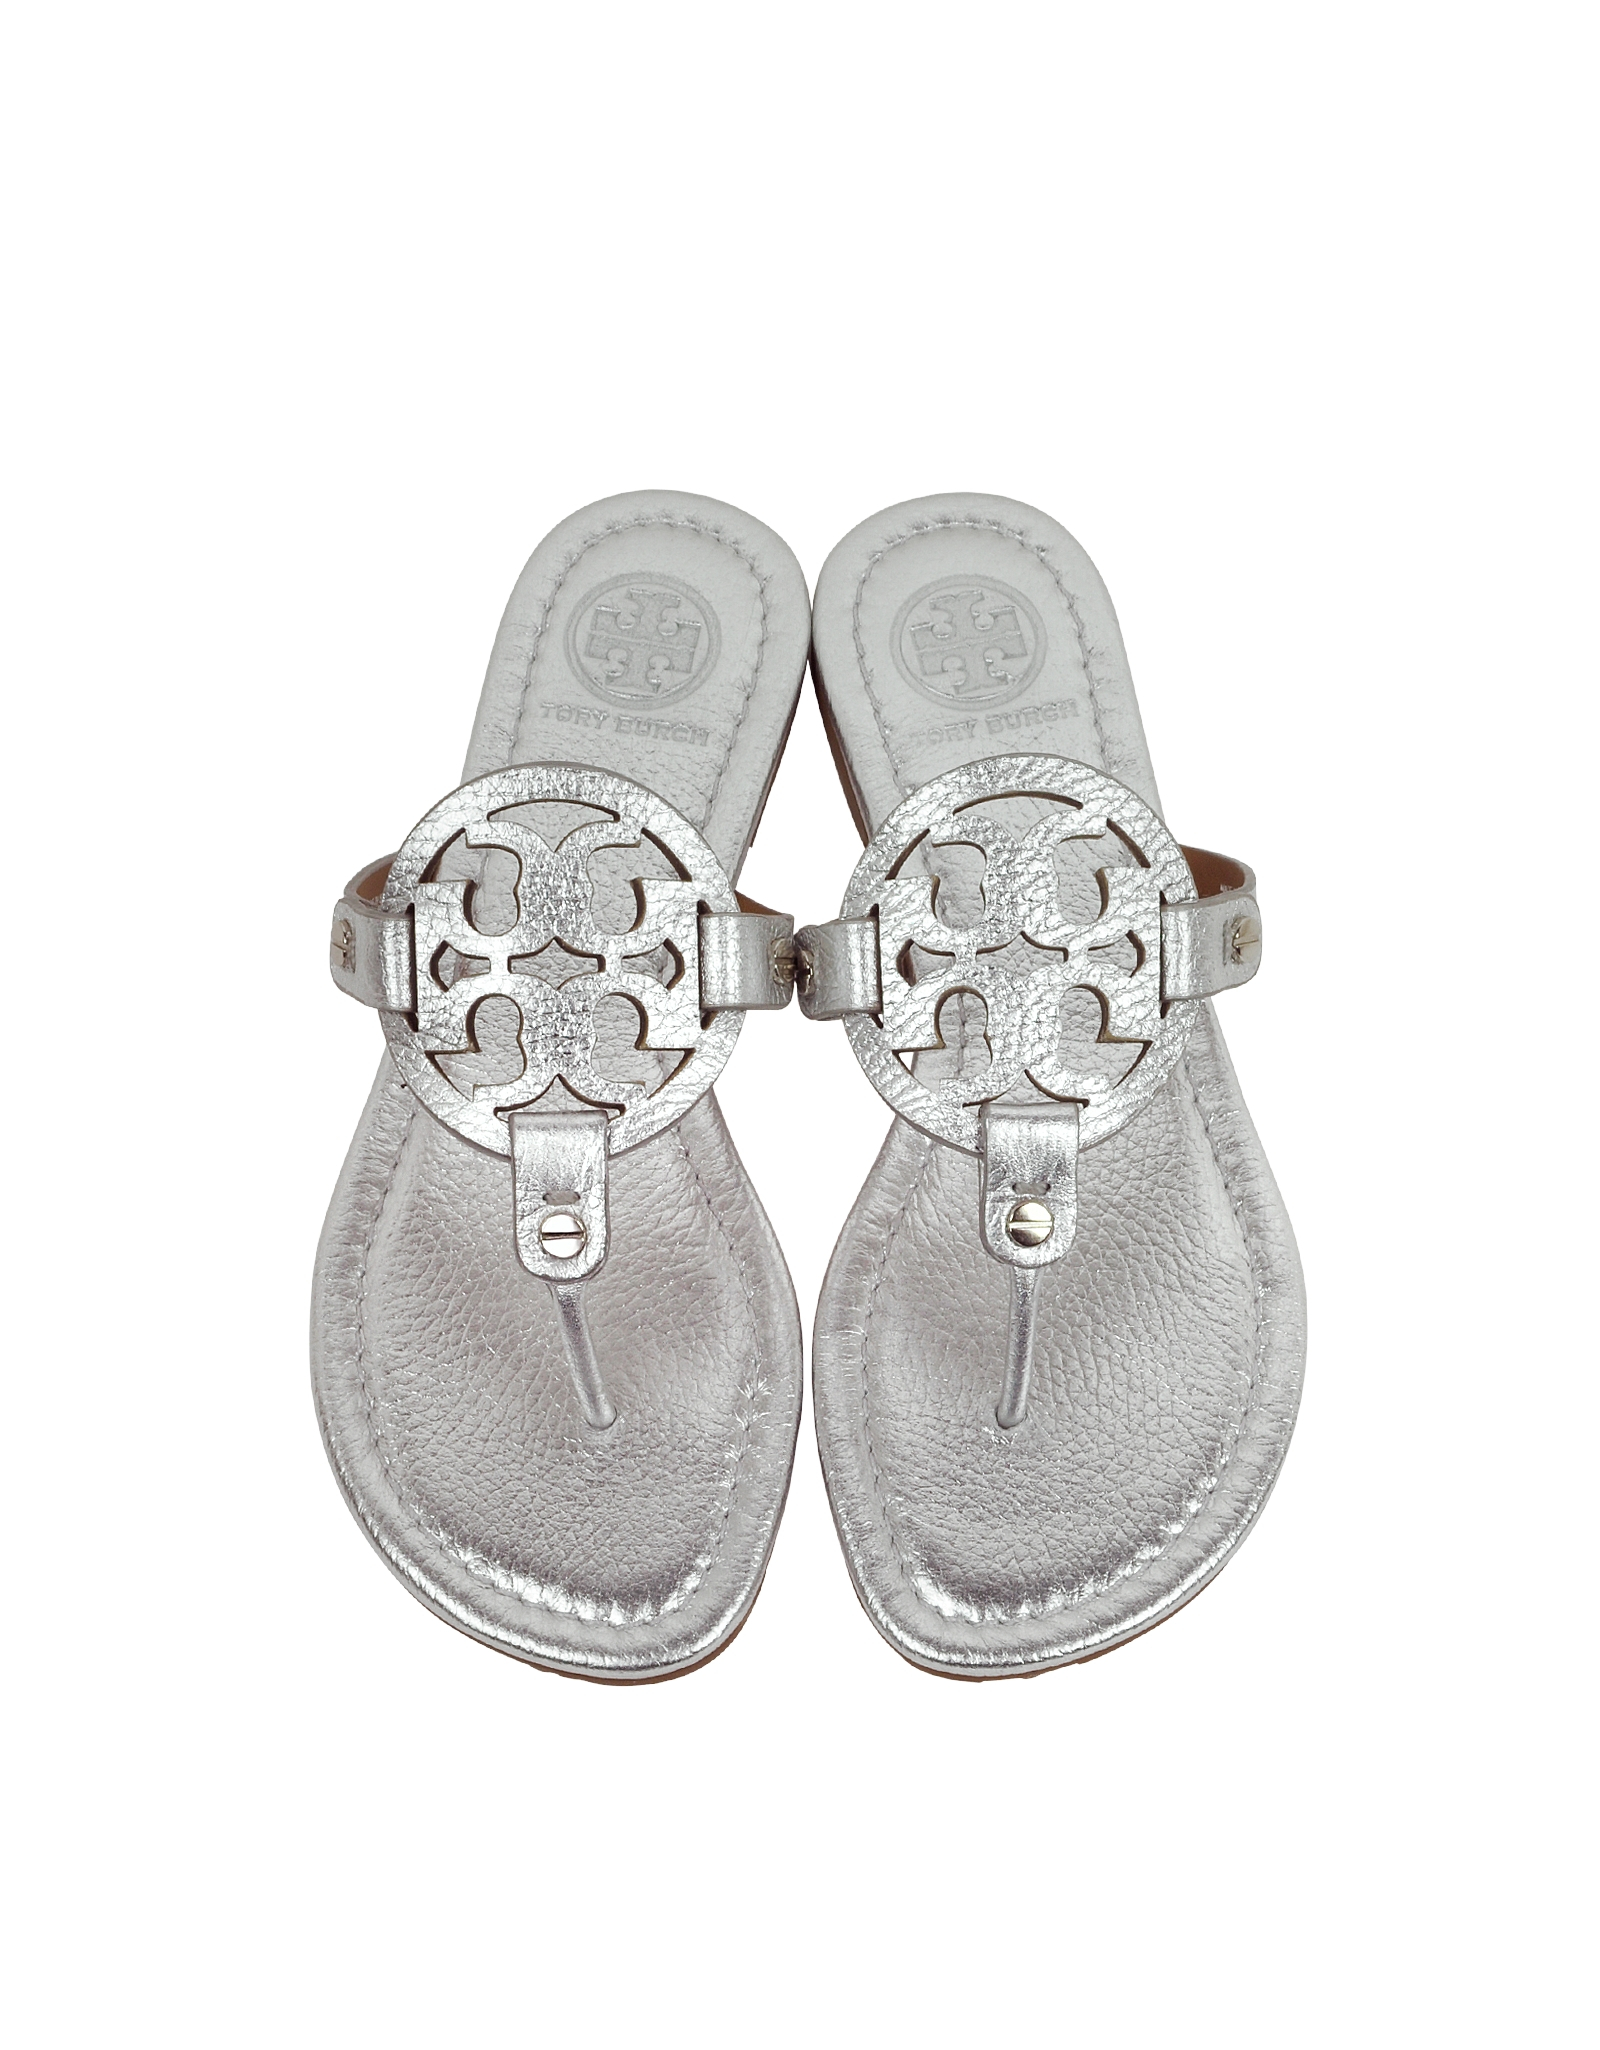 44fccfa4e3a2 Lyst - Tory Burch Miller Metallic Silver Leather Sandal in Metallic